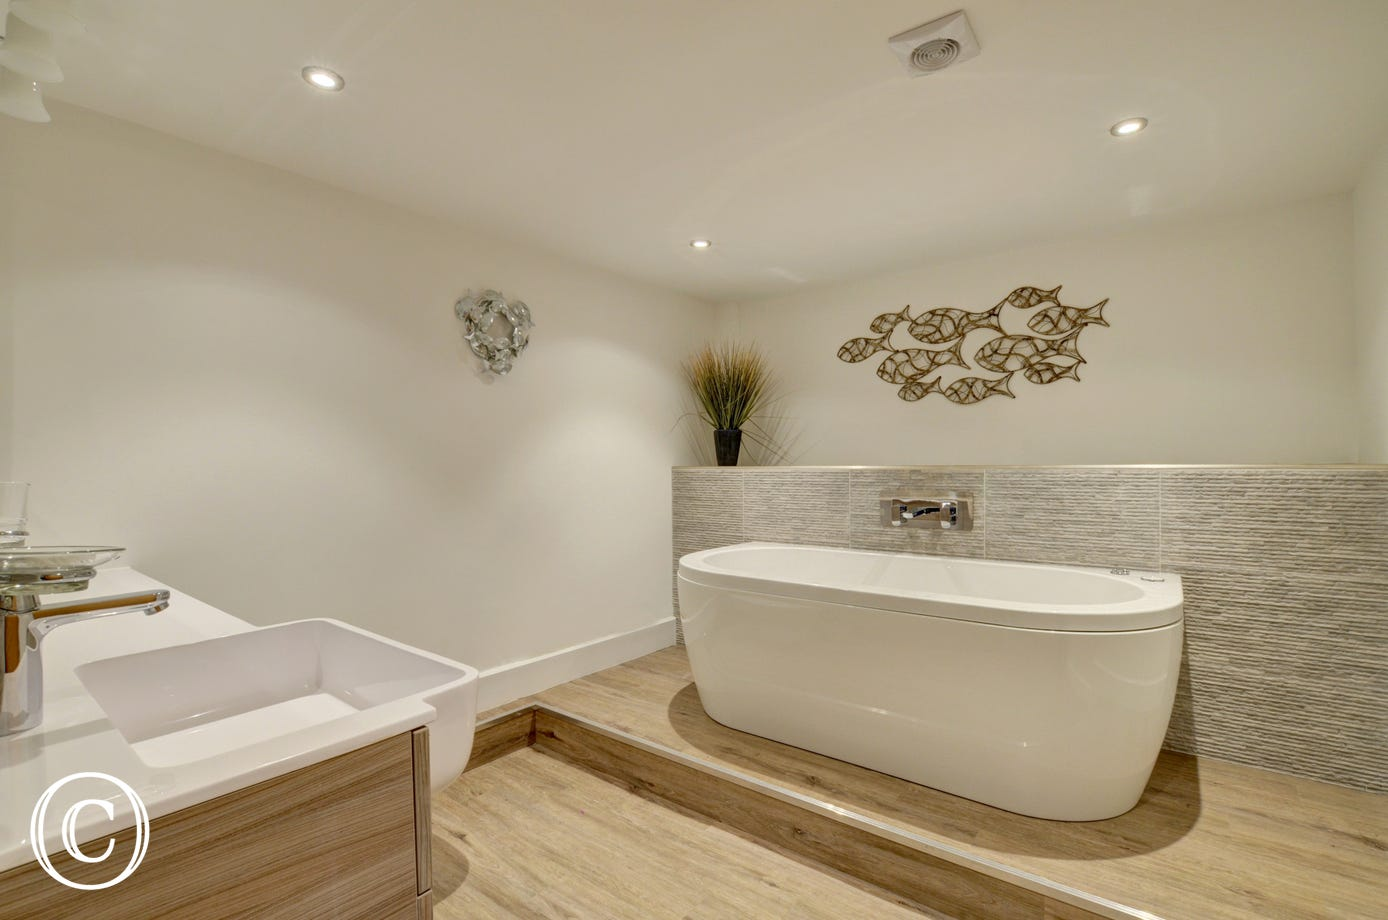 The family bathroom is a real indulgence incorporating a deluxe Jacuzzi spa bath with WiFi and mood lighting